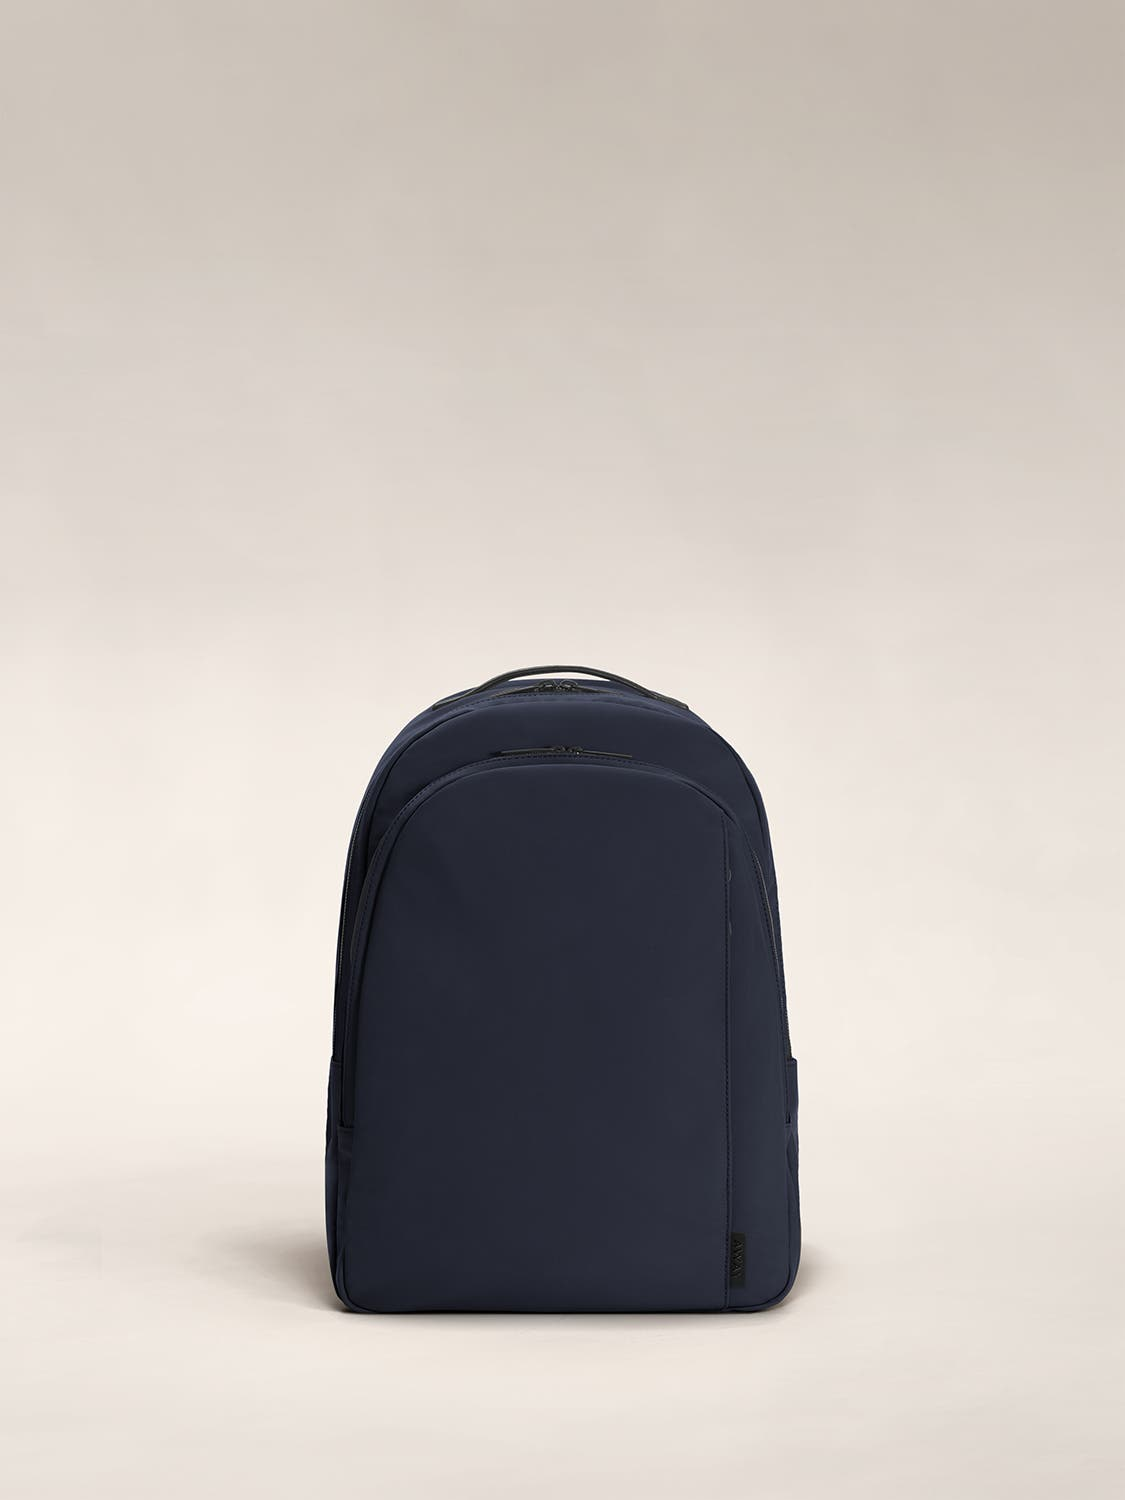 Navy color backpack with one large zip compartment and one small one.